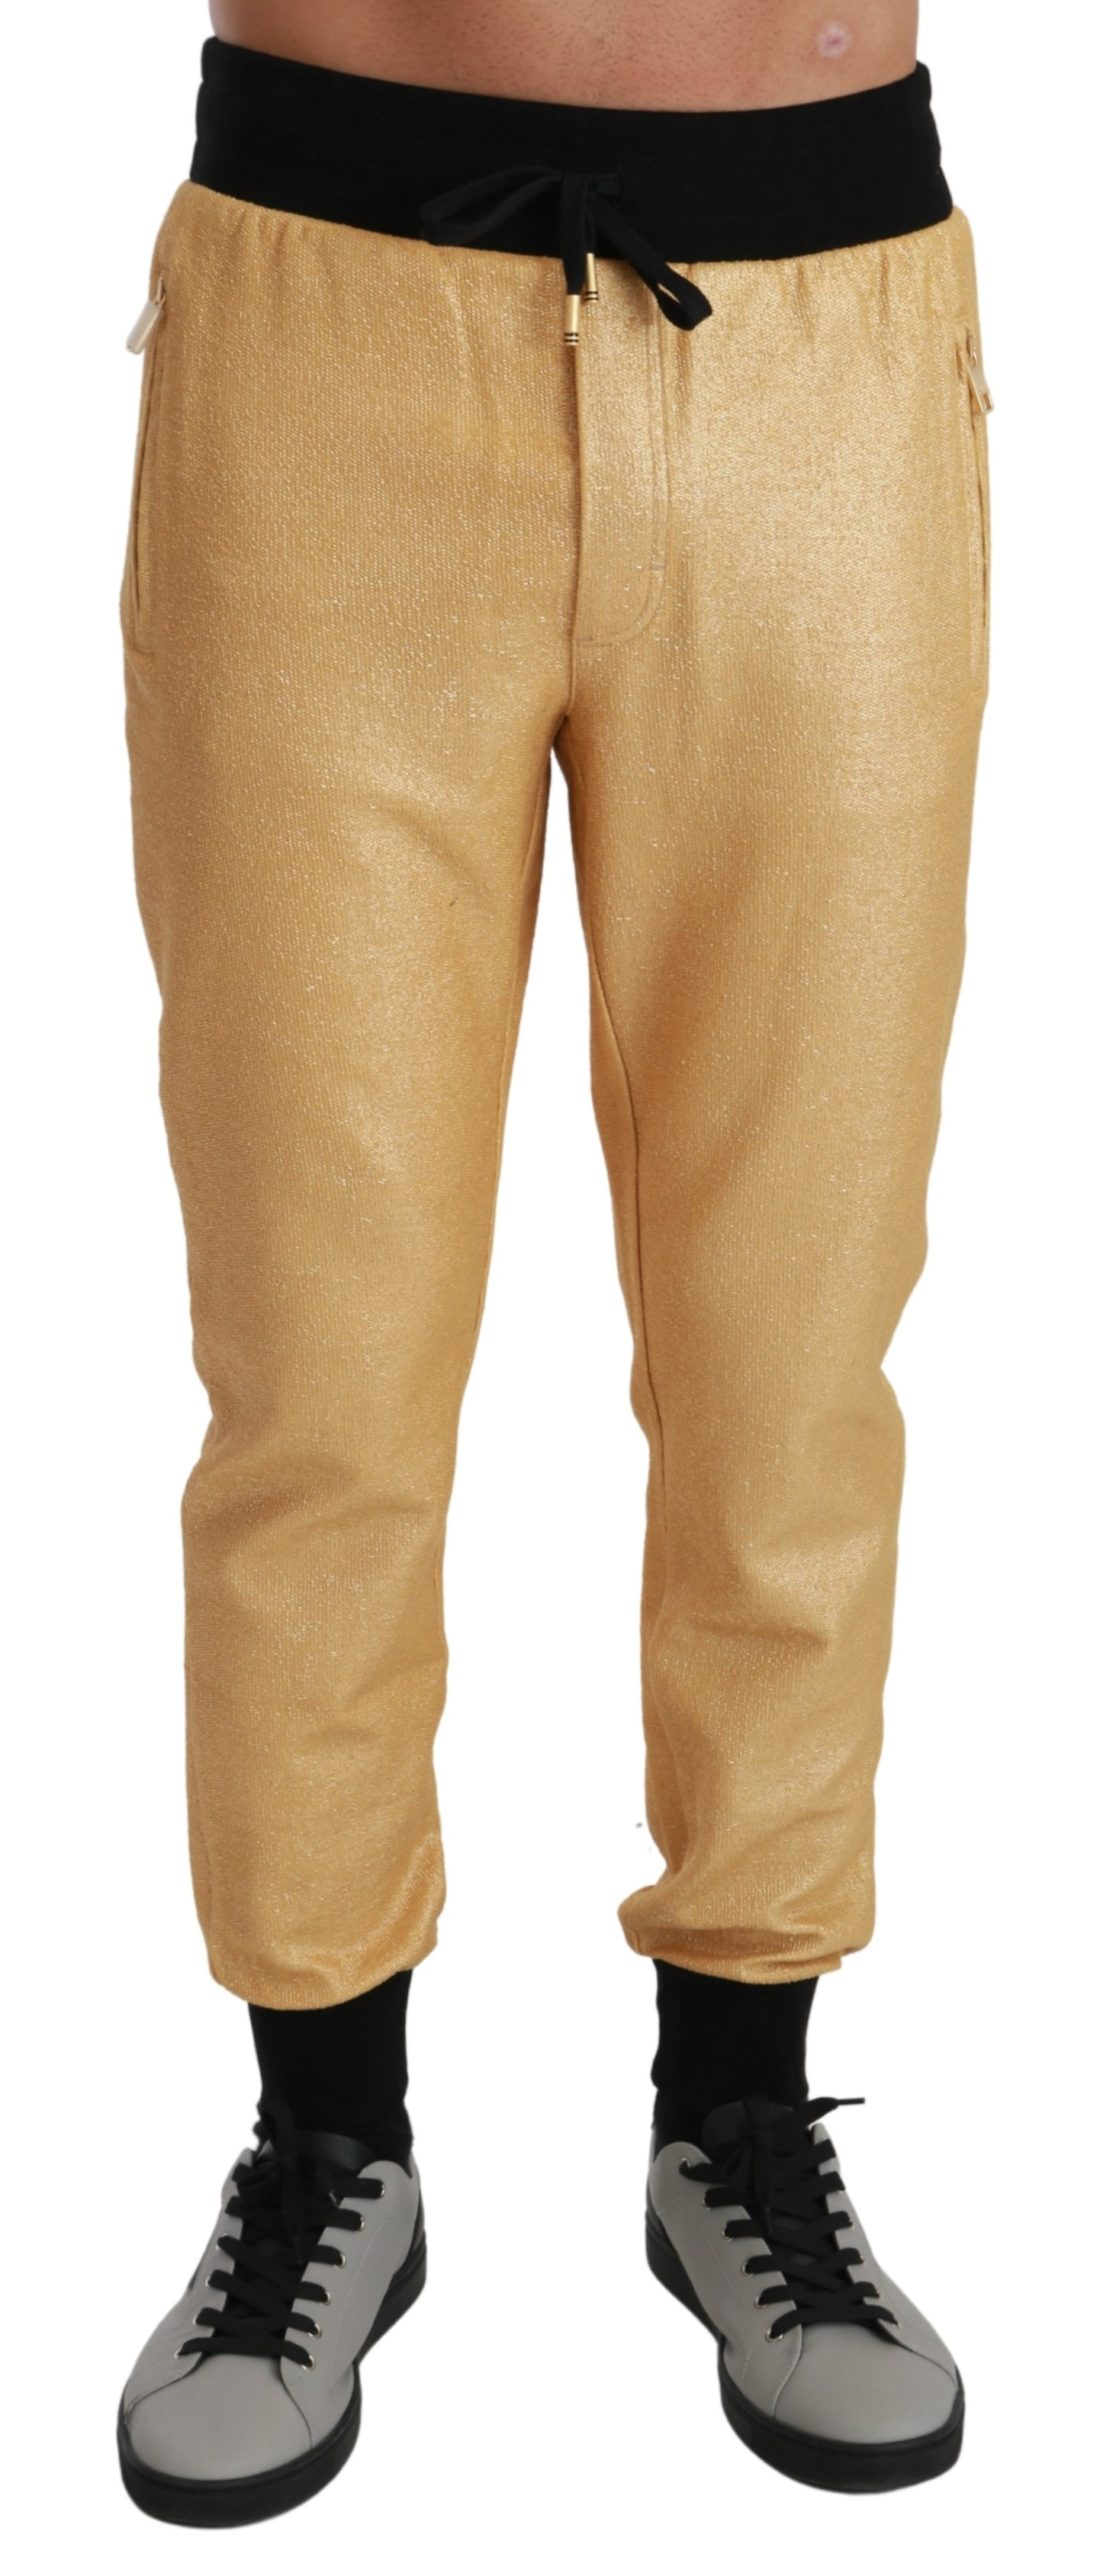 Dolce & Gabbana Men's Pig of the Year Trouser Gold PAN71036 - IT44 | XS